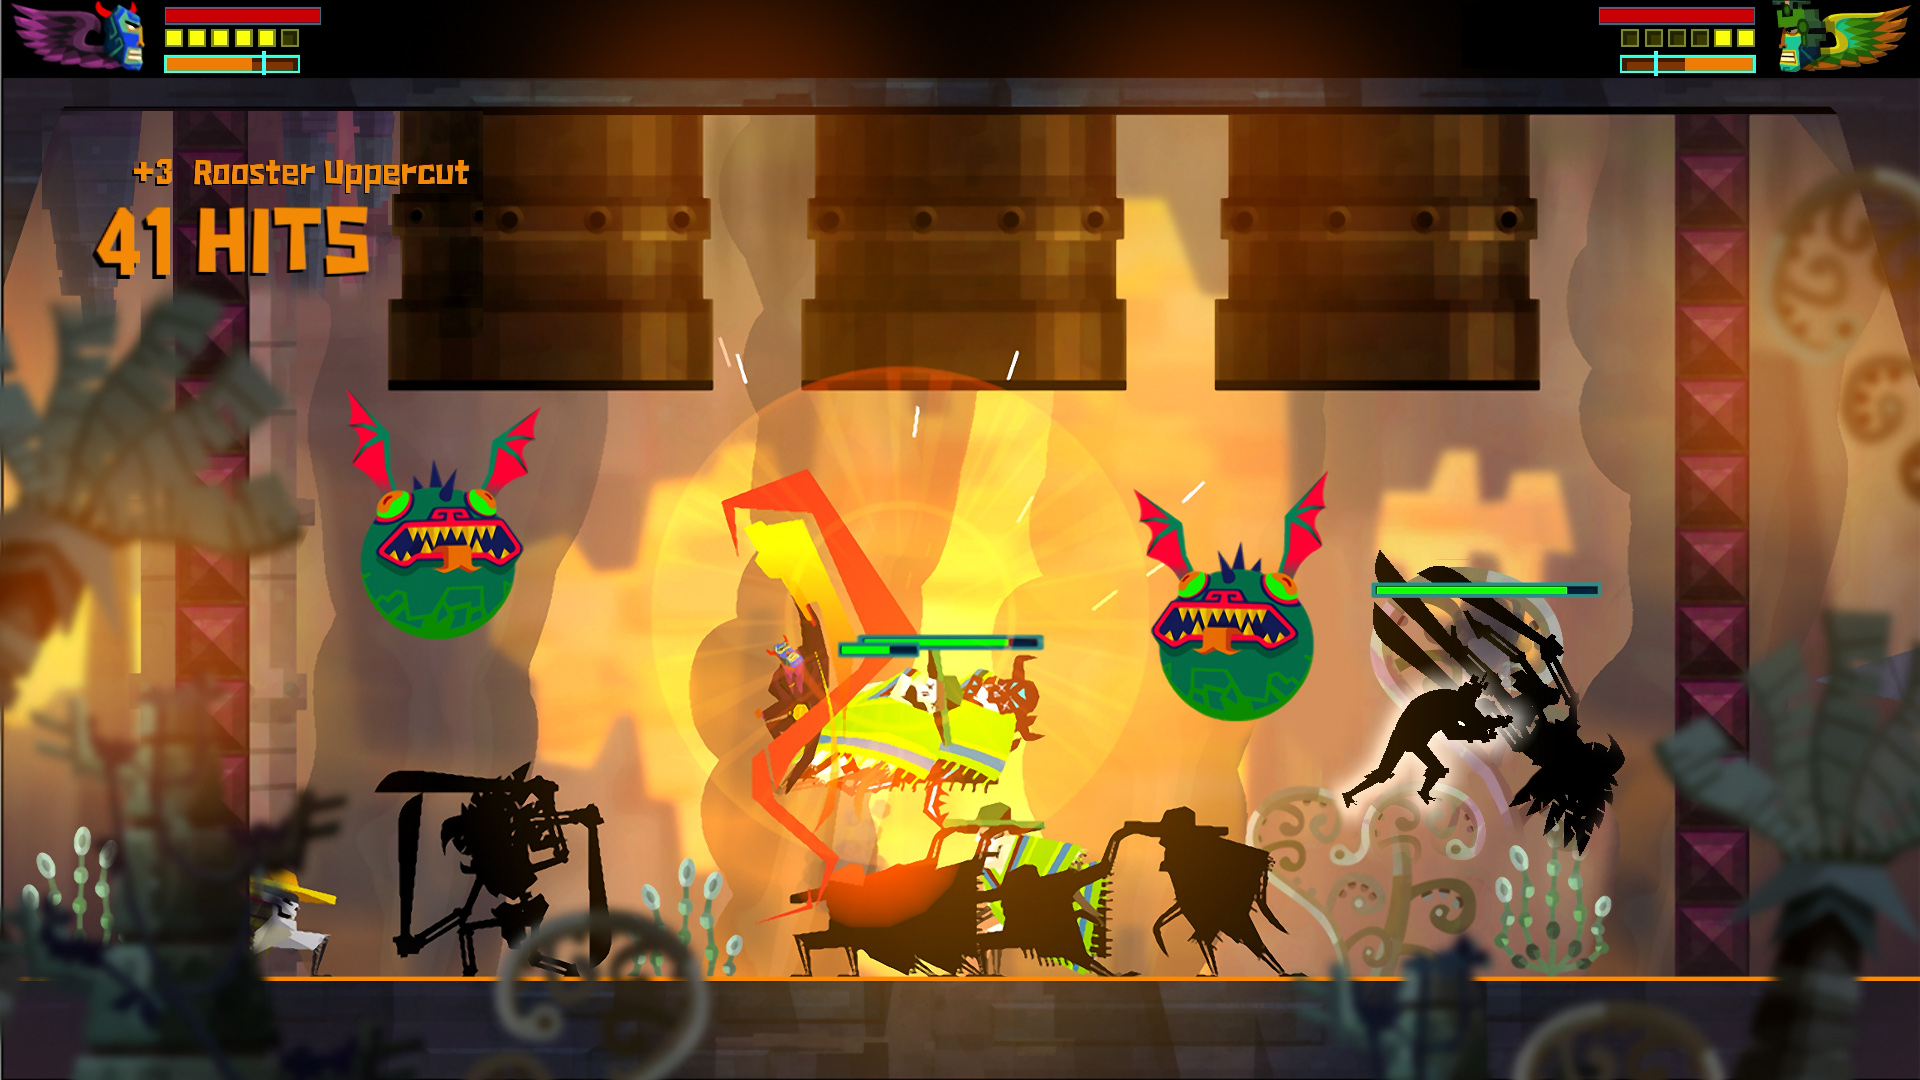 Guacamelee! Backgrounds, Compatible - PC, Mobile, Gadgets| 1920x1080 px